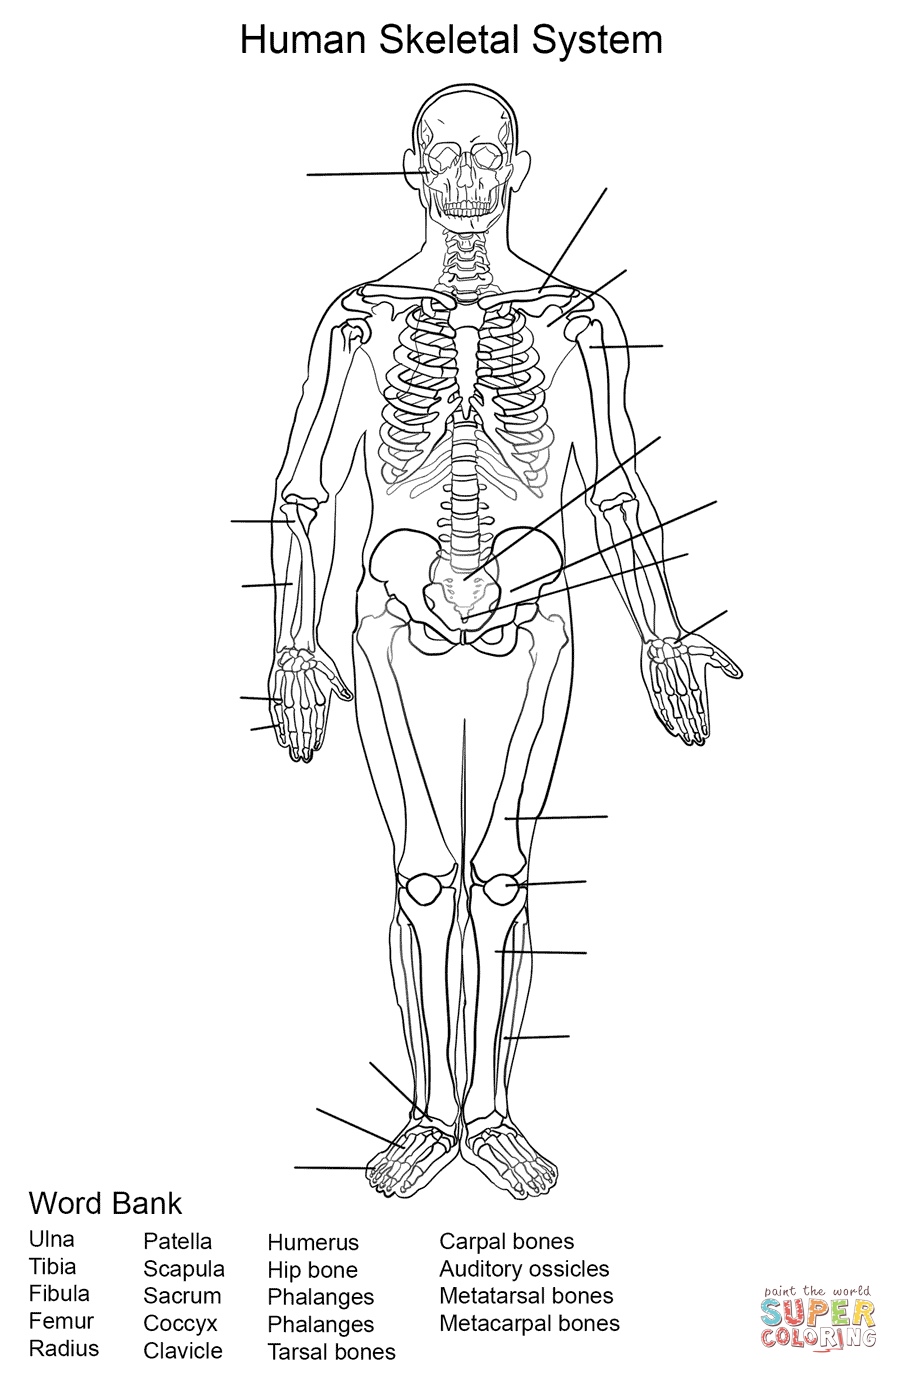 skeletal system coloring page cartoon skeleton coloring pages at getdrawings free download skeletal page system coloring